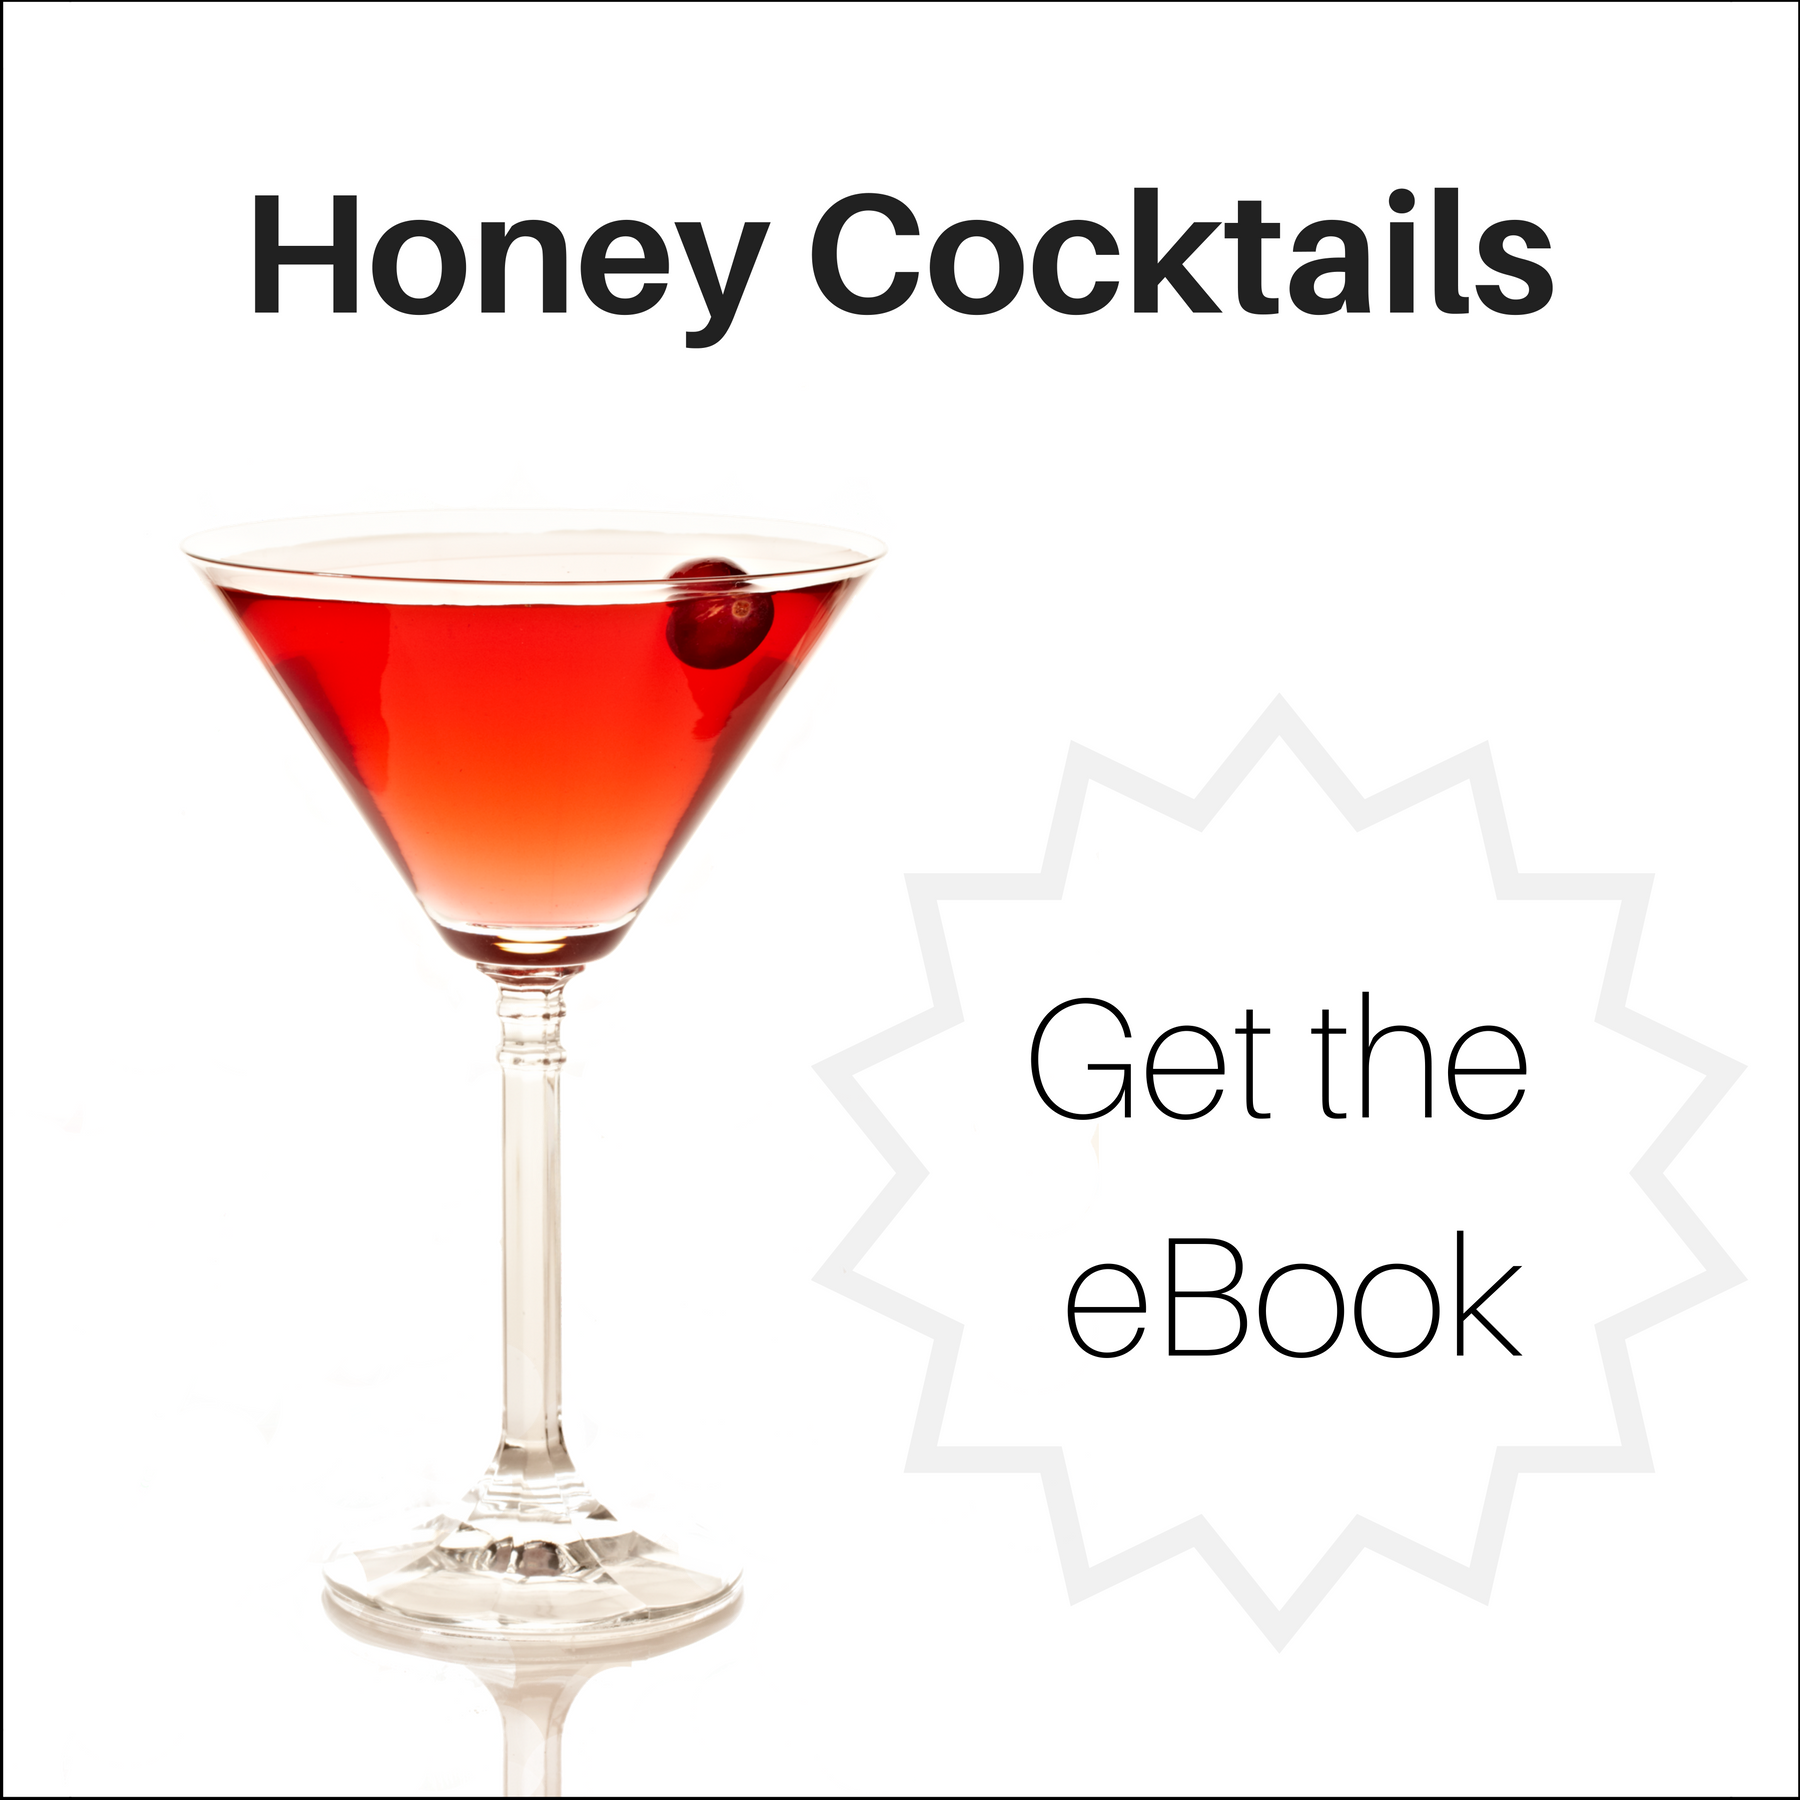 Get our honey cocktail recipe book